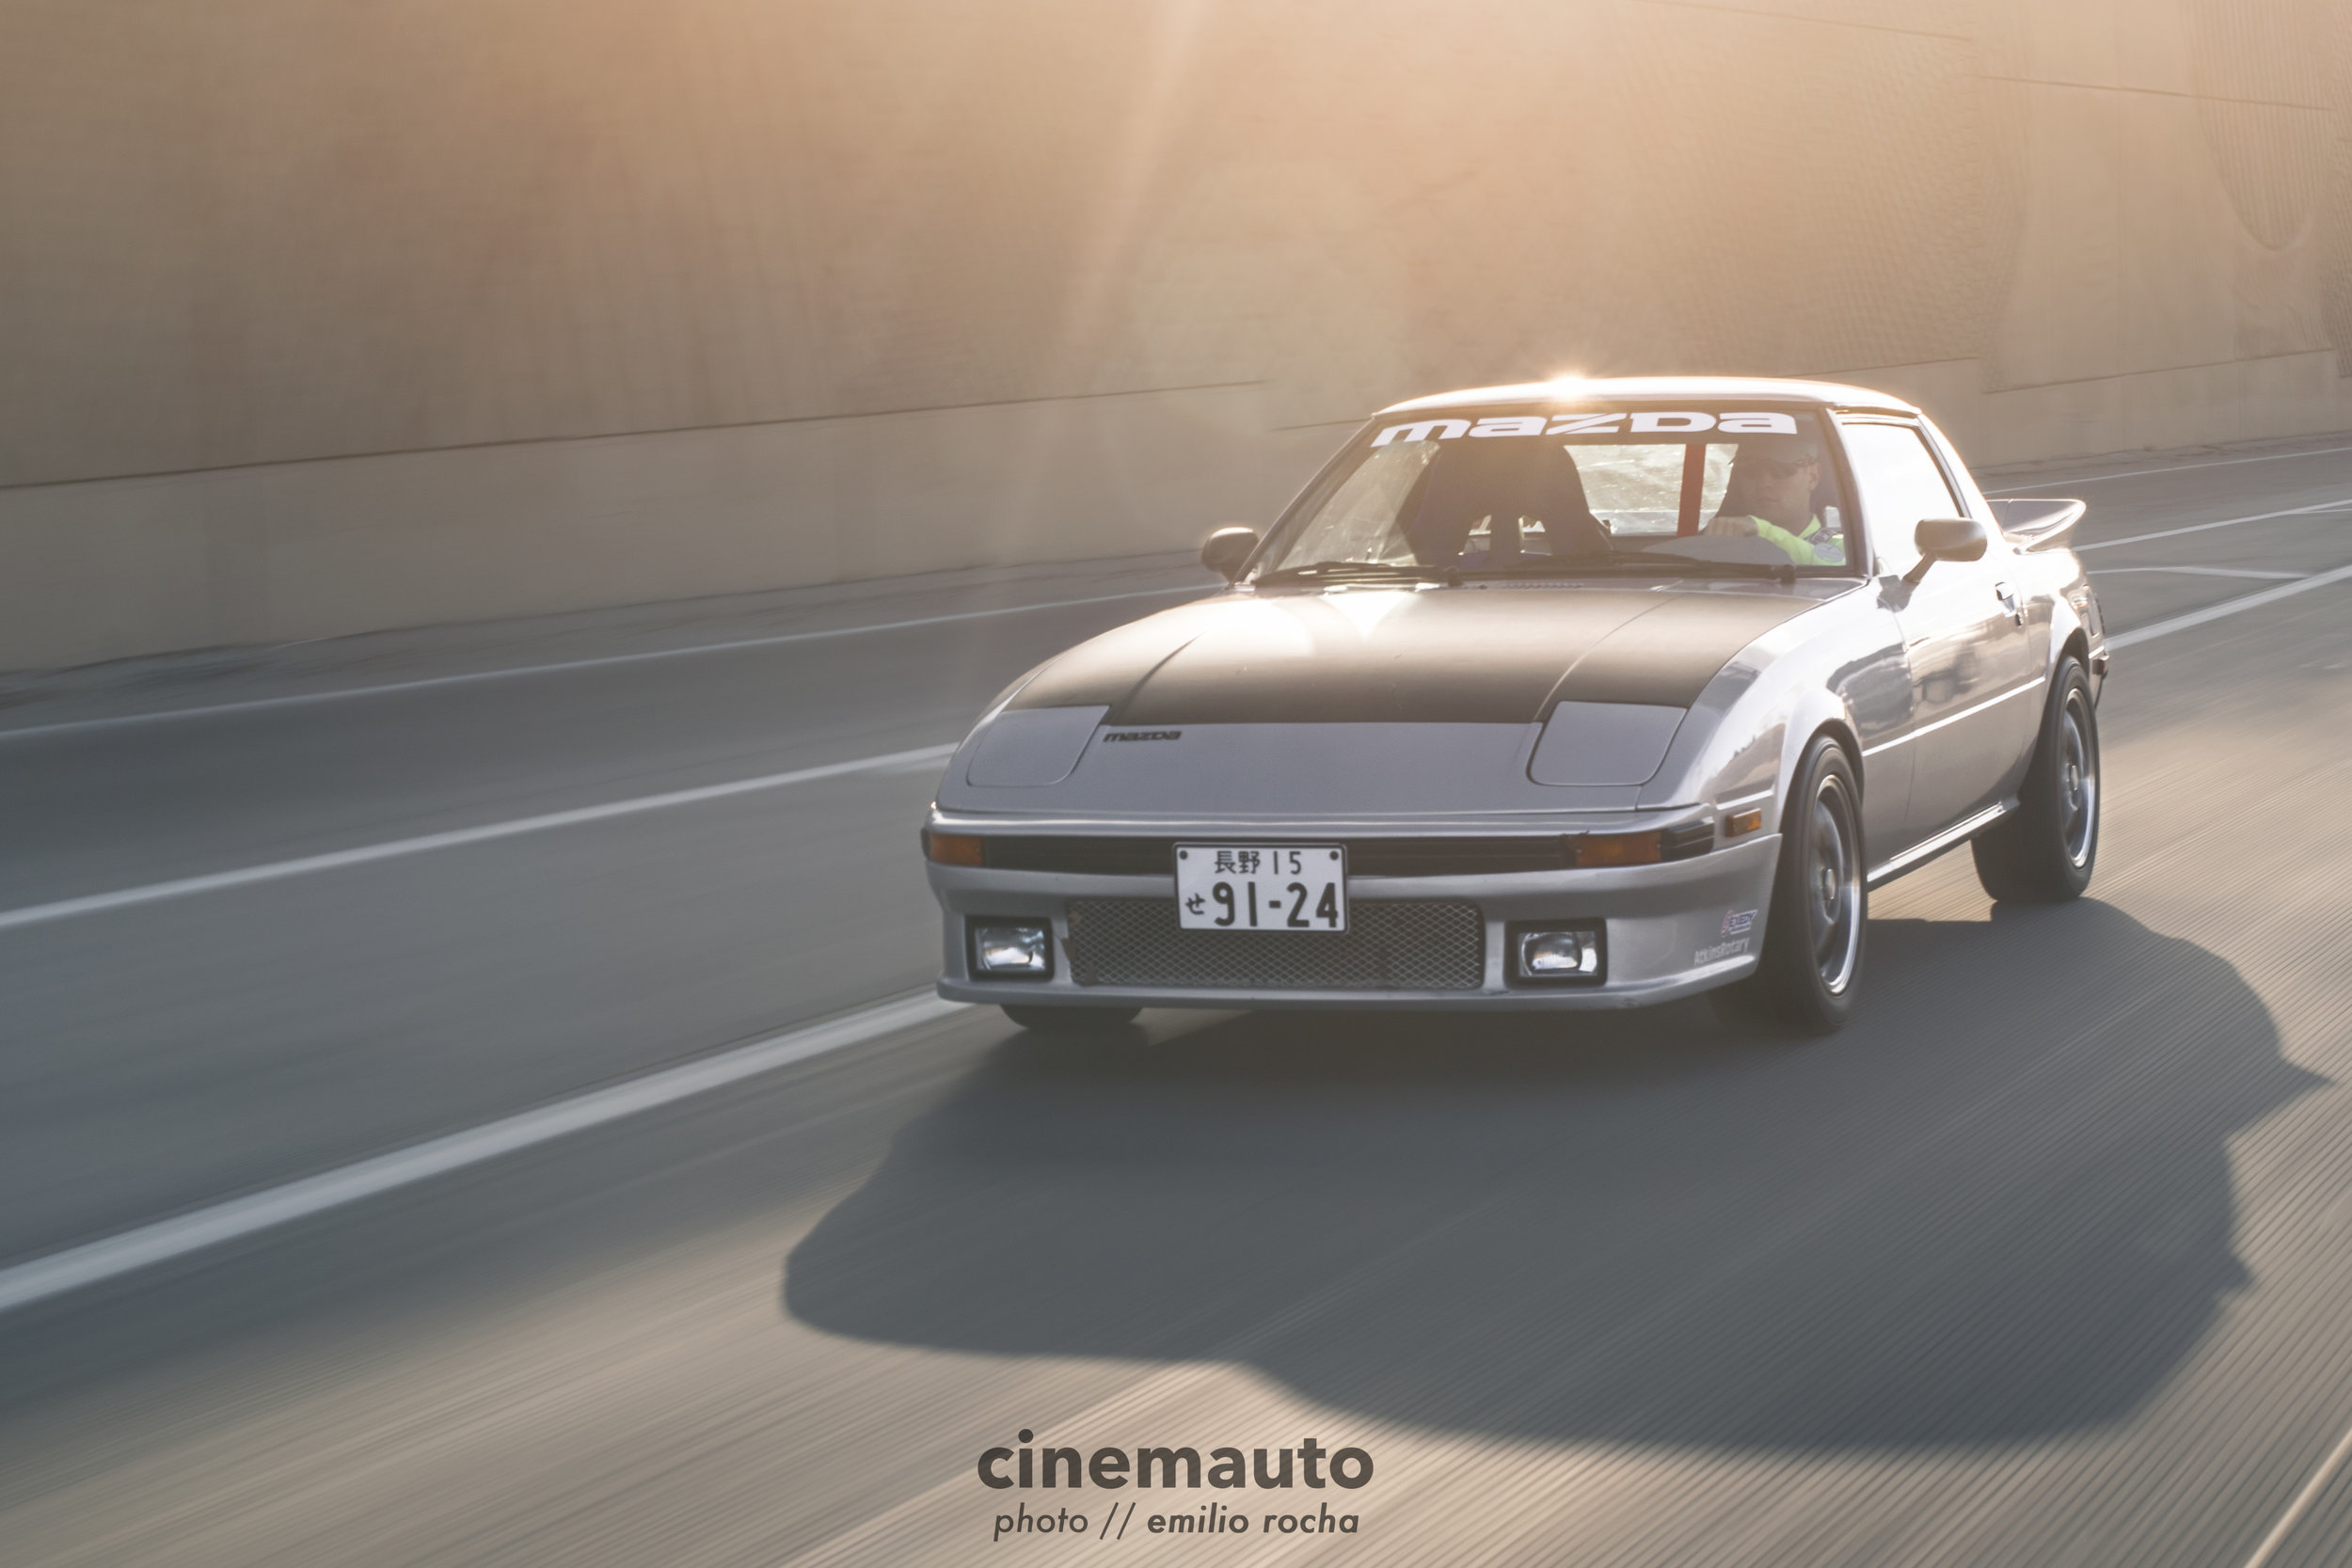 Cinemauto-RX7-27-2.jpg